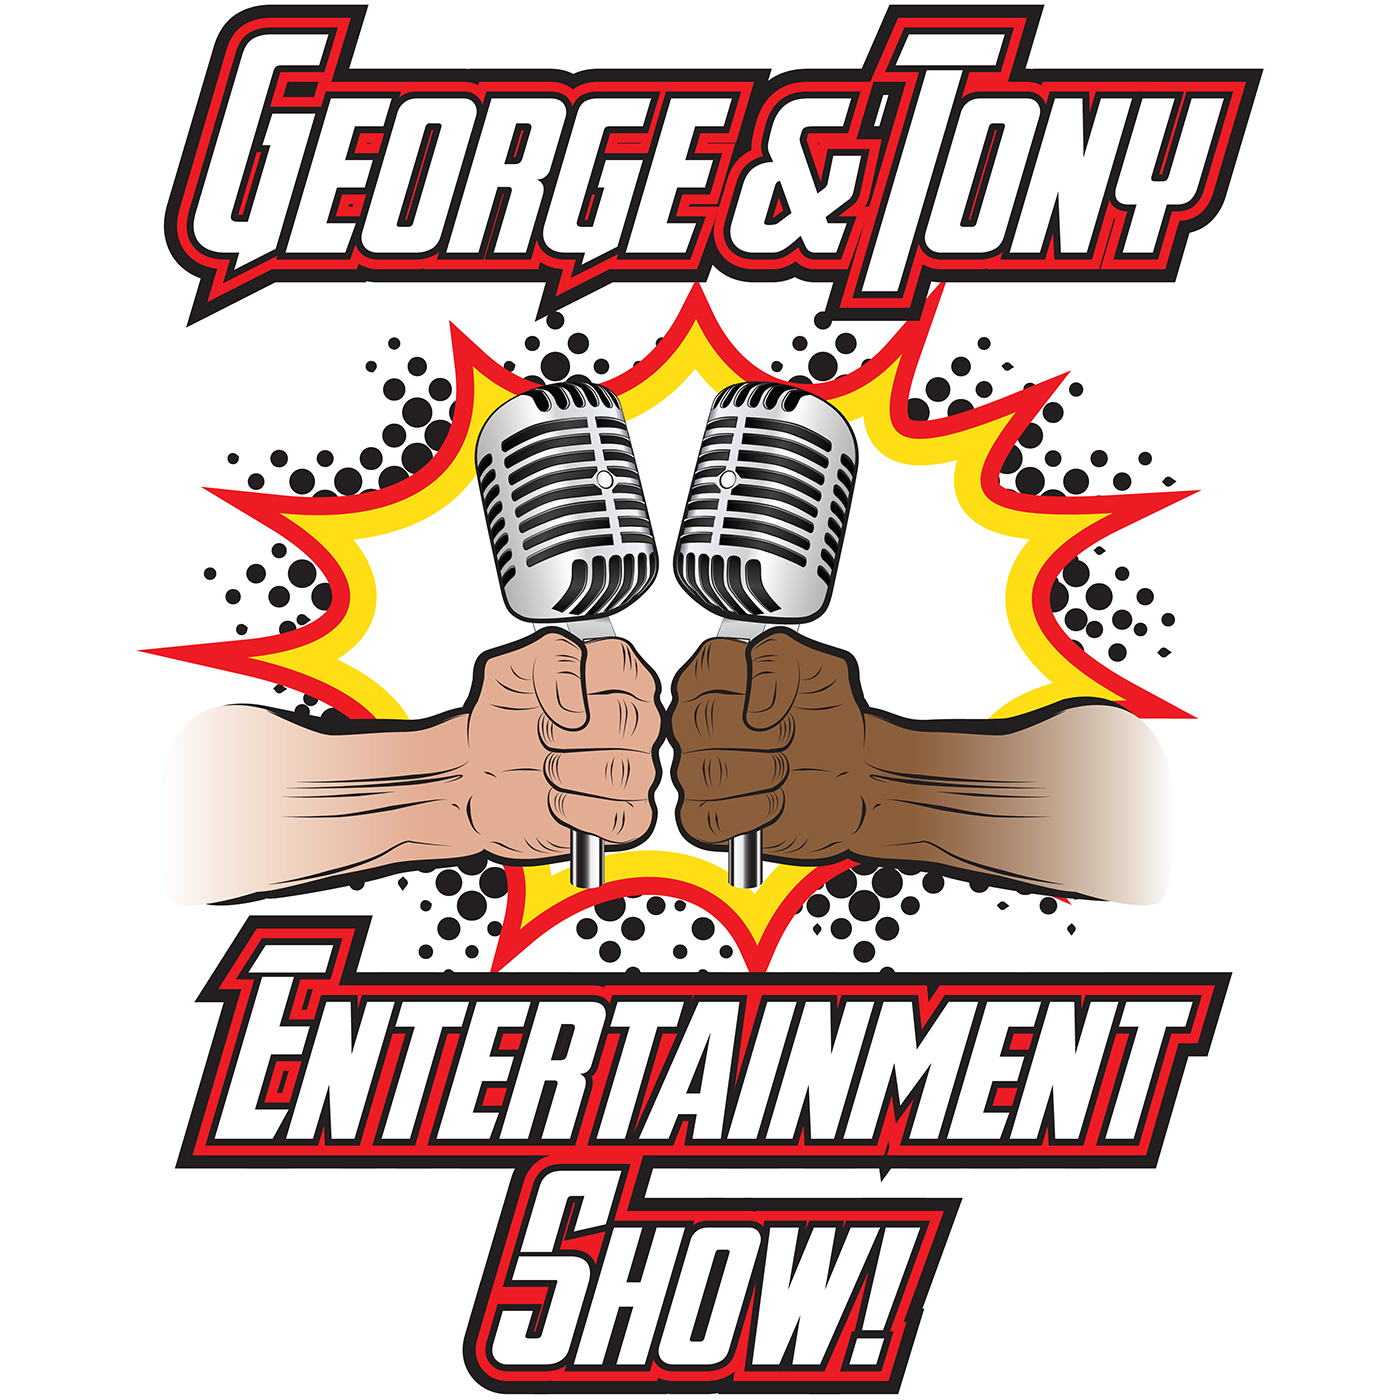 George and Tony Entertainment Show #92